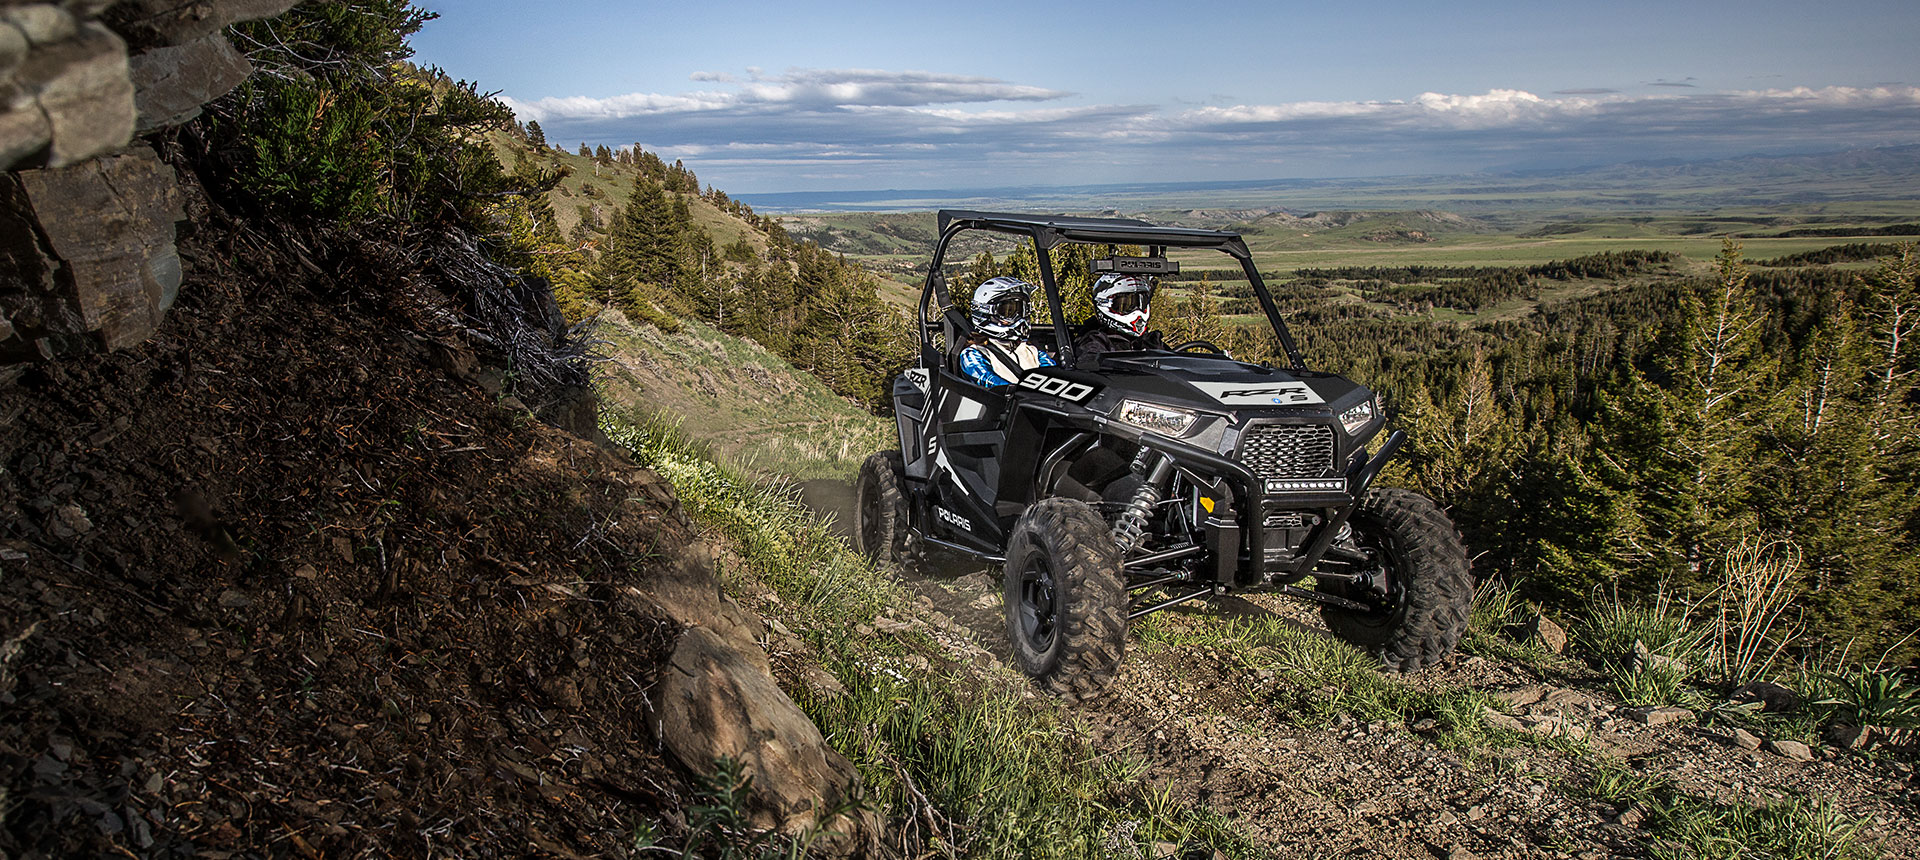 2019 Polaris RZR S 900 EPS in Utica, New York - Photo 4